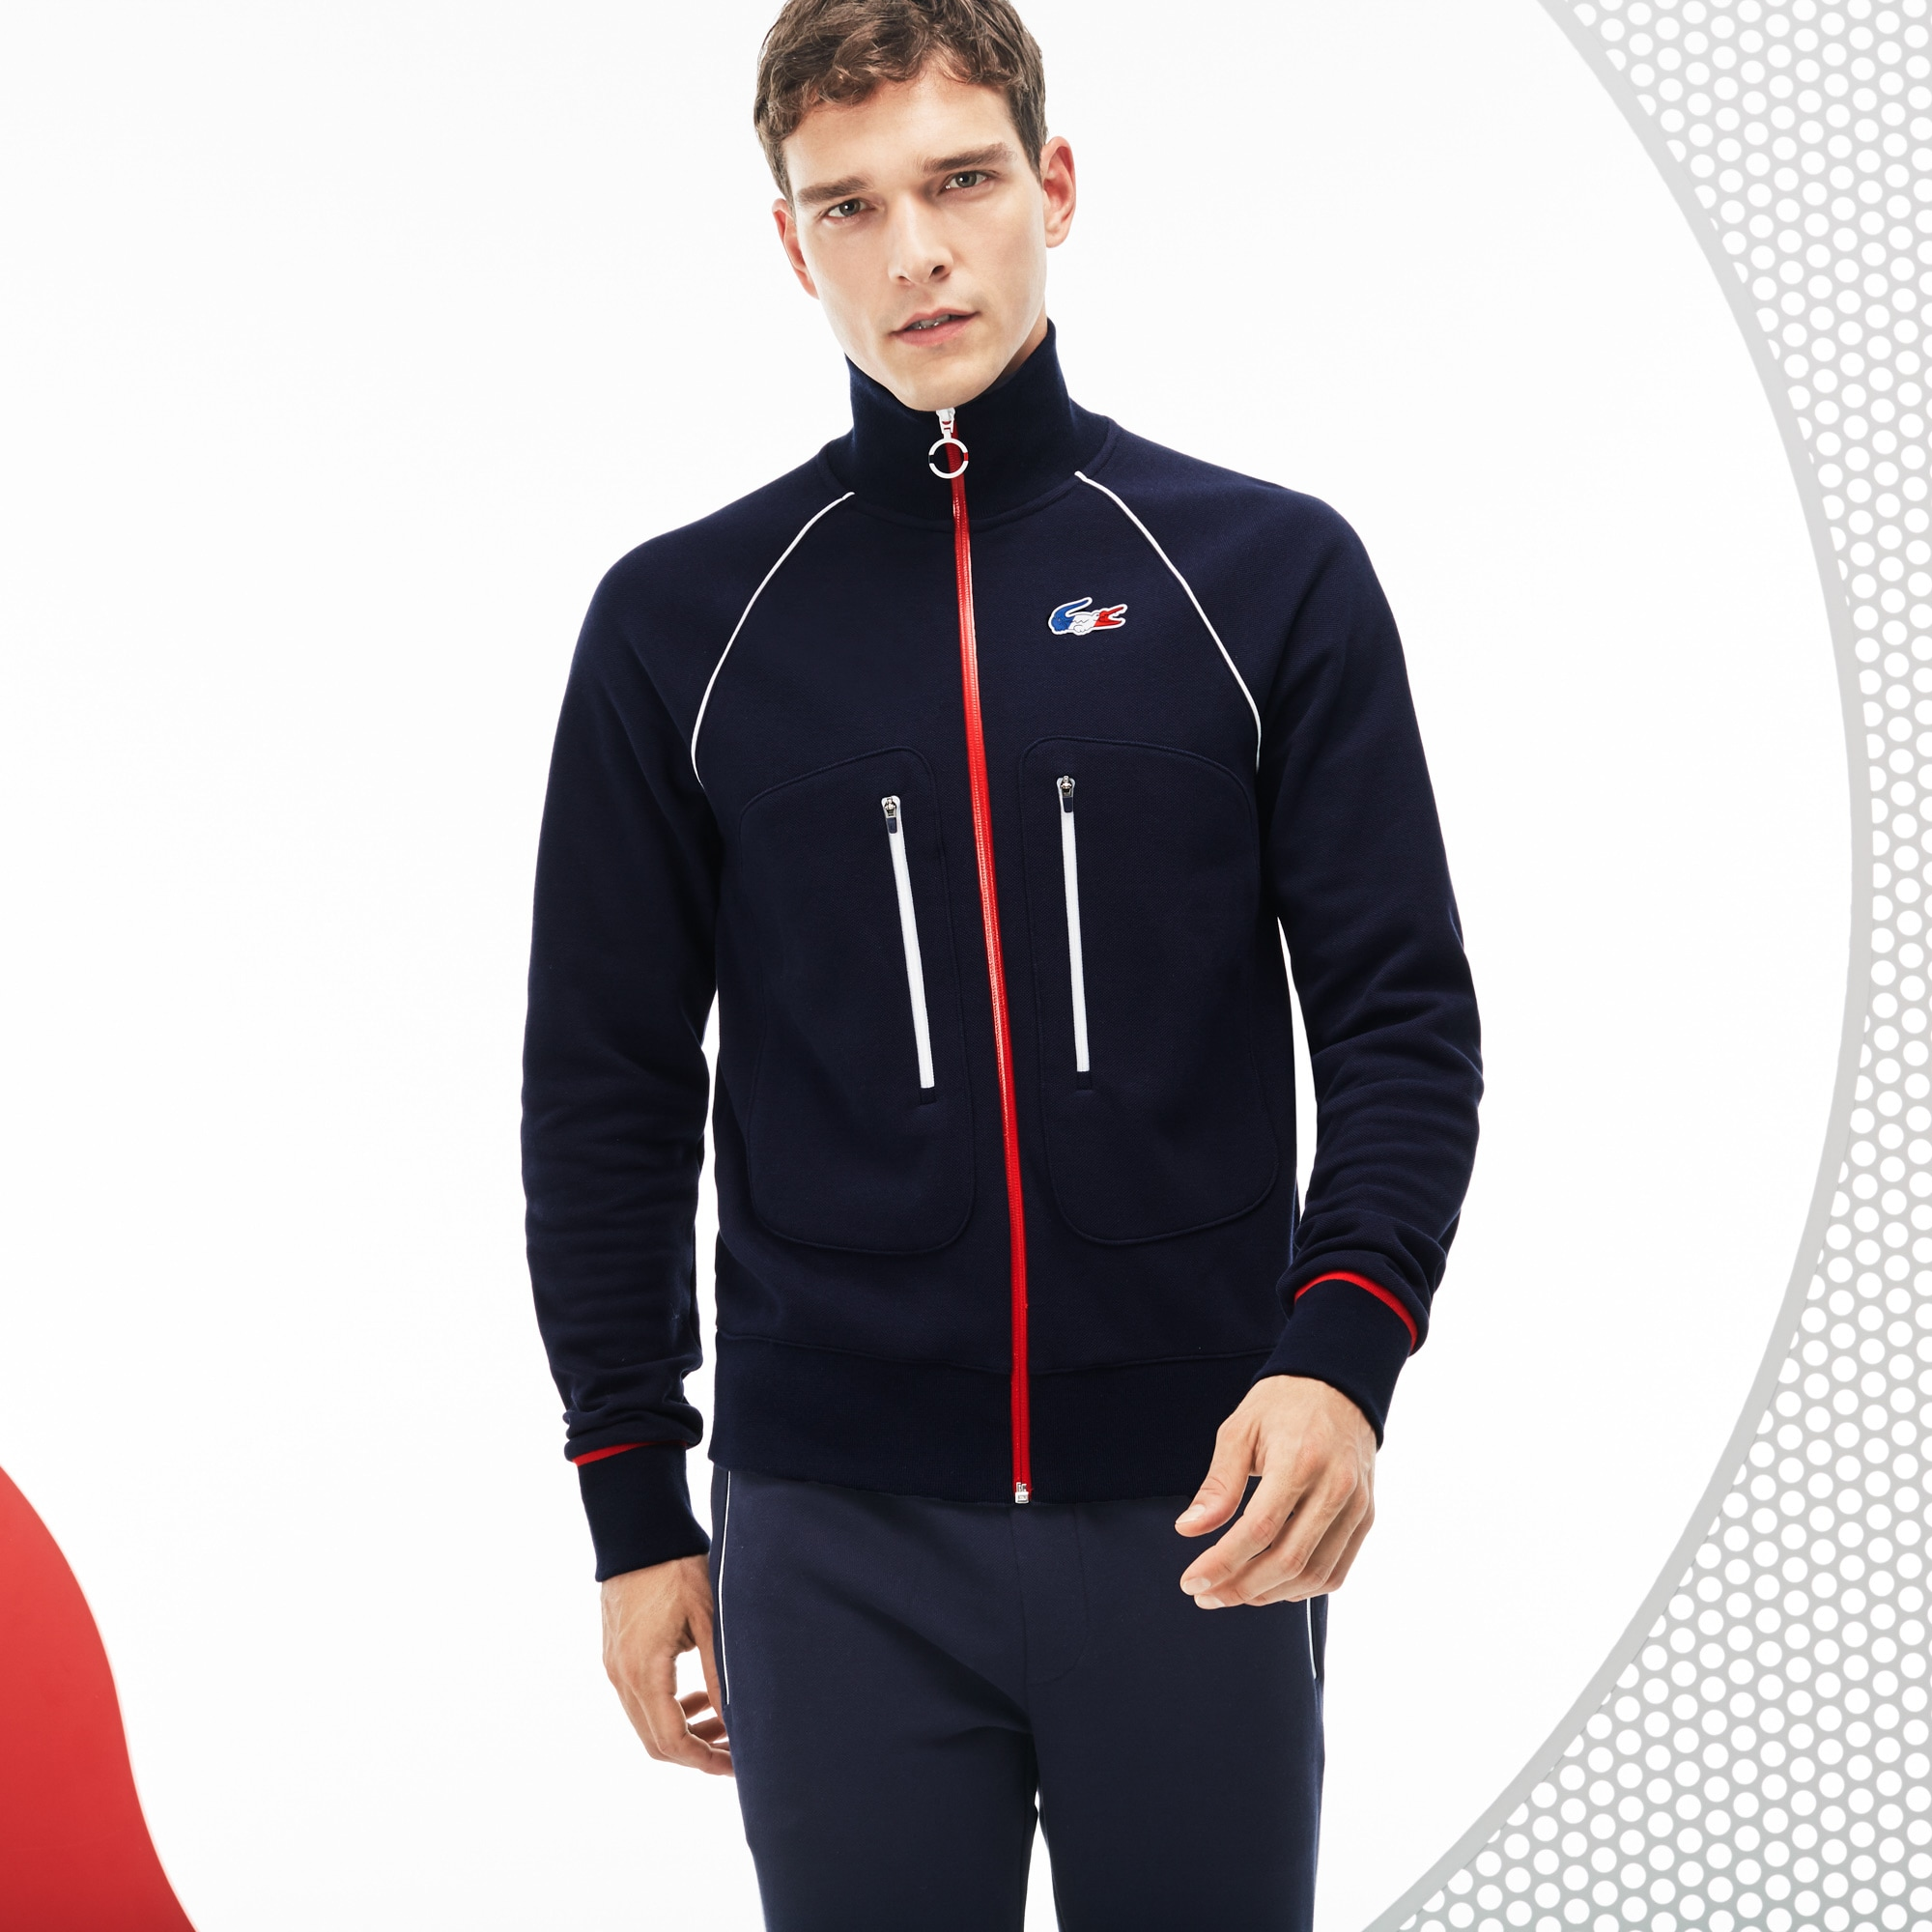 Men's French Sporting Spirit Edition Zippered Fleece Sweatshirt